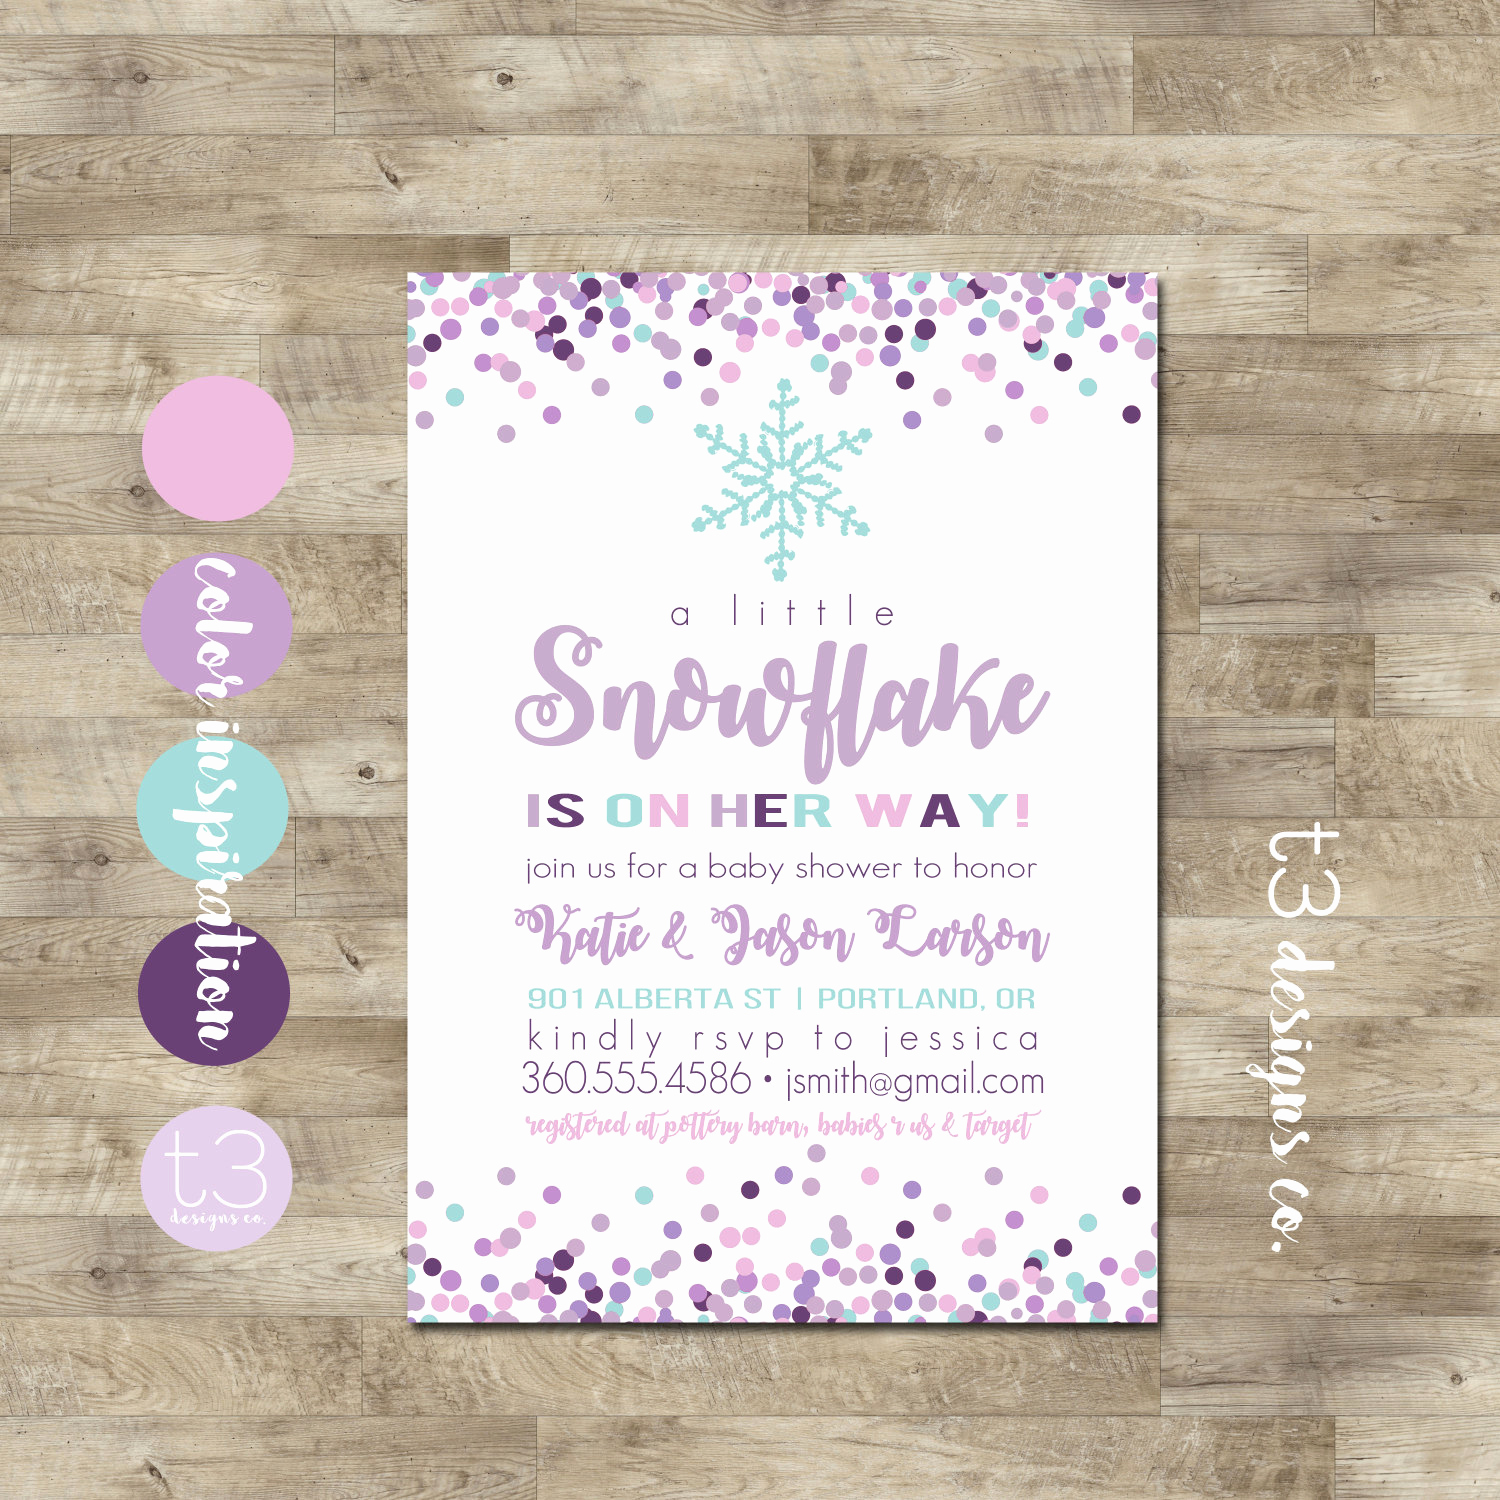 Winter Baby Shower Invitation New Girl Snowflake Baby Shower Invitation Winter Baby Shower